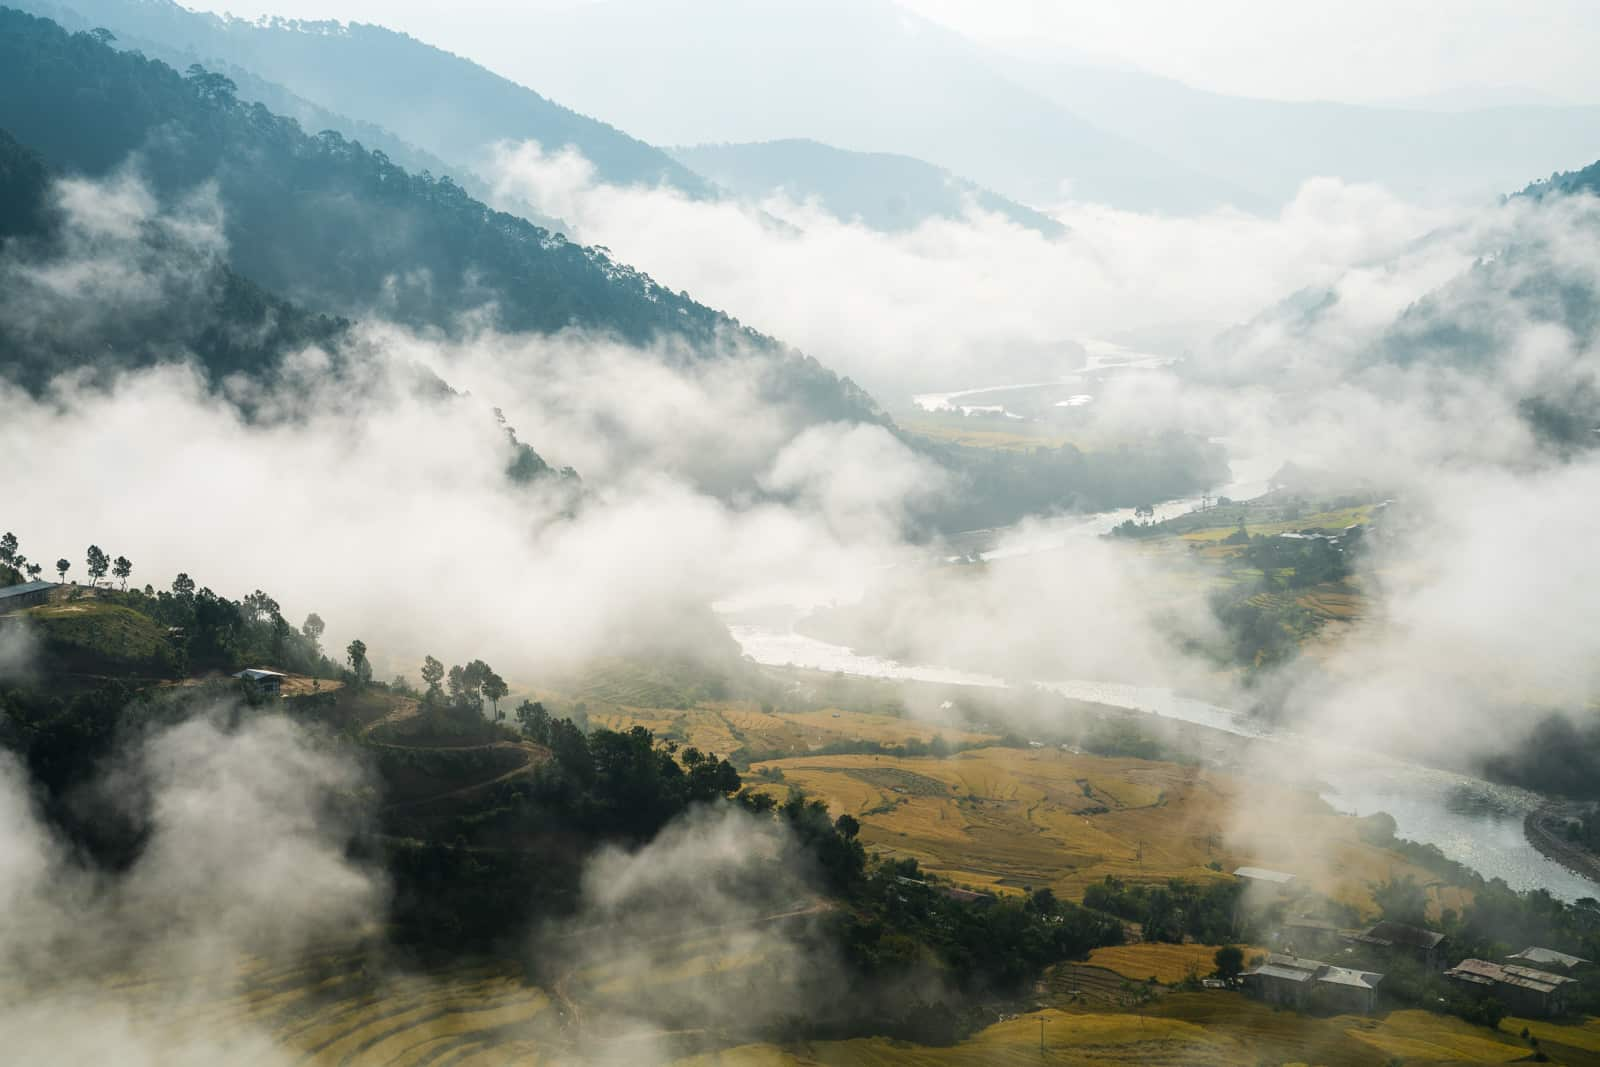 Photos of Bhutan - Rolling mist in a valley near Punakha - Lost With Purpose travel blog